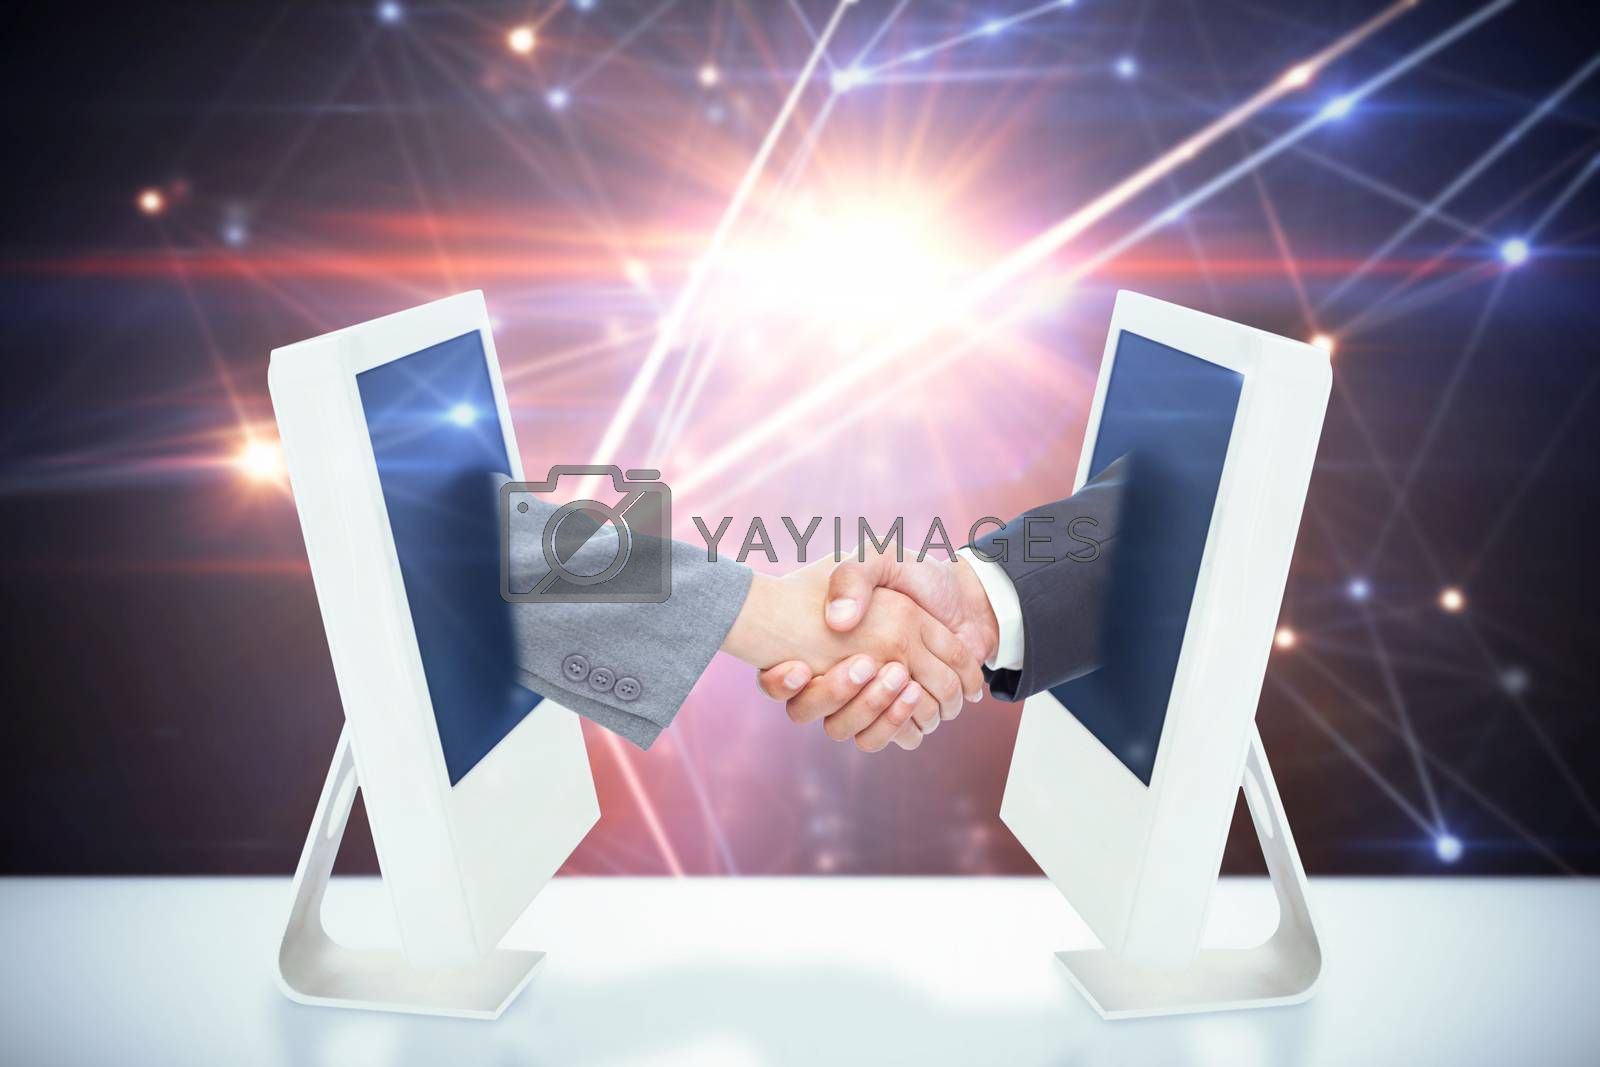 Handshake between two business people against lines on glowing background